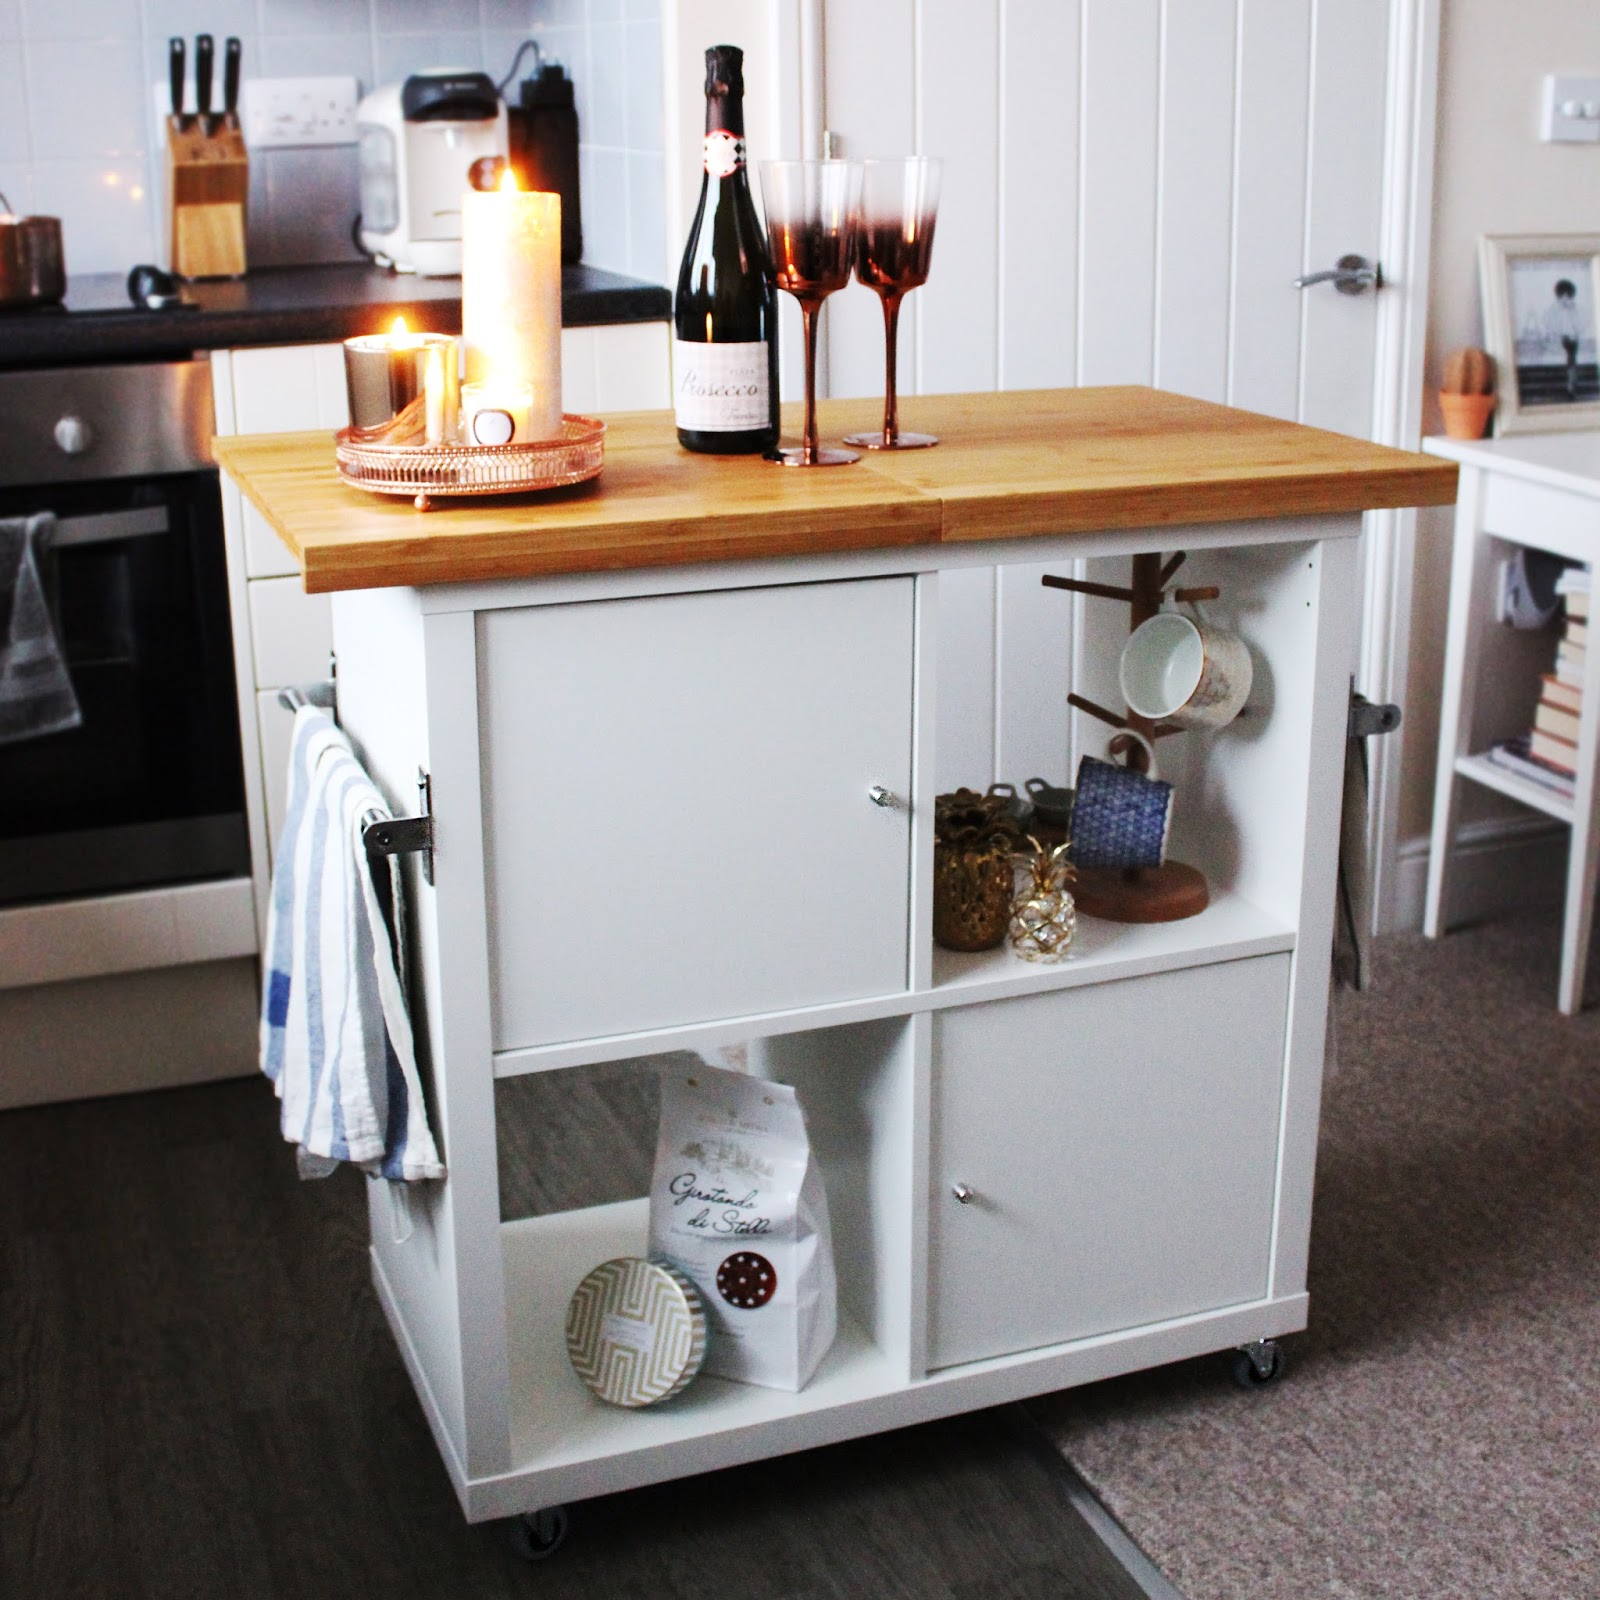 Ikea Kallax Kitchen Island Hack